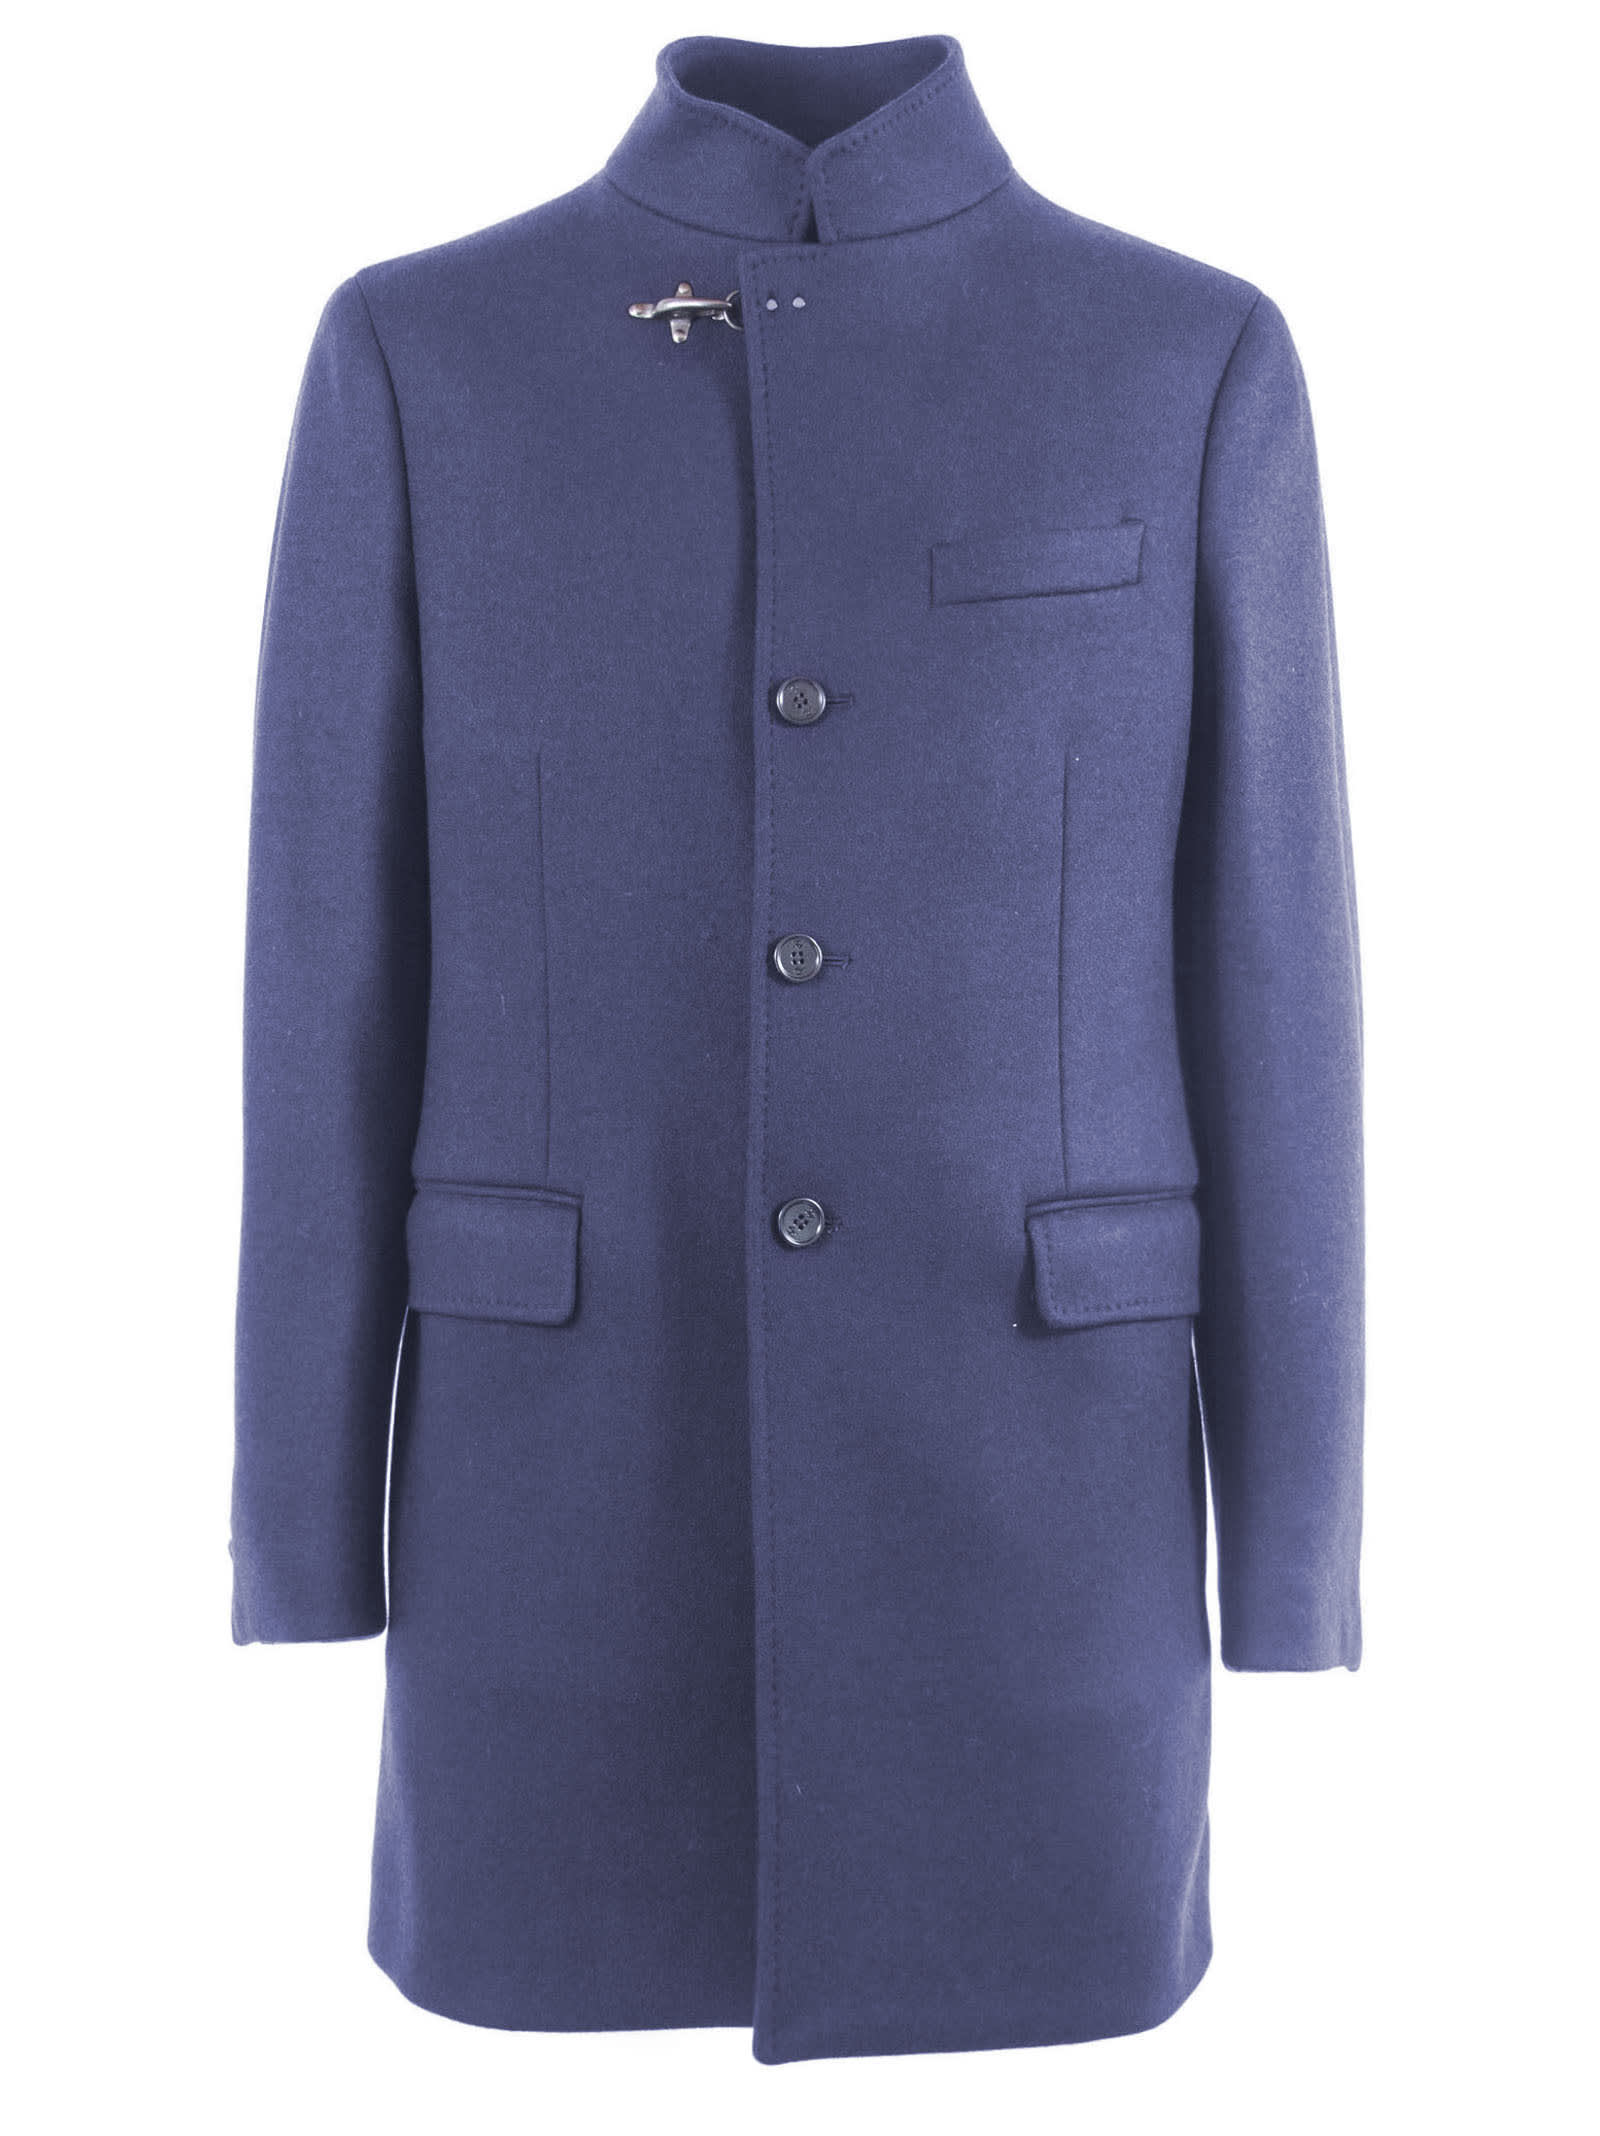 Blue Wool Button-Up Coat Featuring A Buckle Fastening, A Front Button Fastening, Long Sleeves, A Tailored Design, A Broad Welt Chest Pocket, Front Flap Pockets And A Rear Central Vent. Composition: 70% Wool, 25% Polyamide, 5% Other Fibres